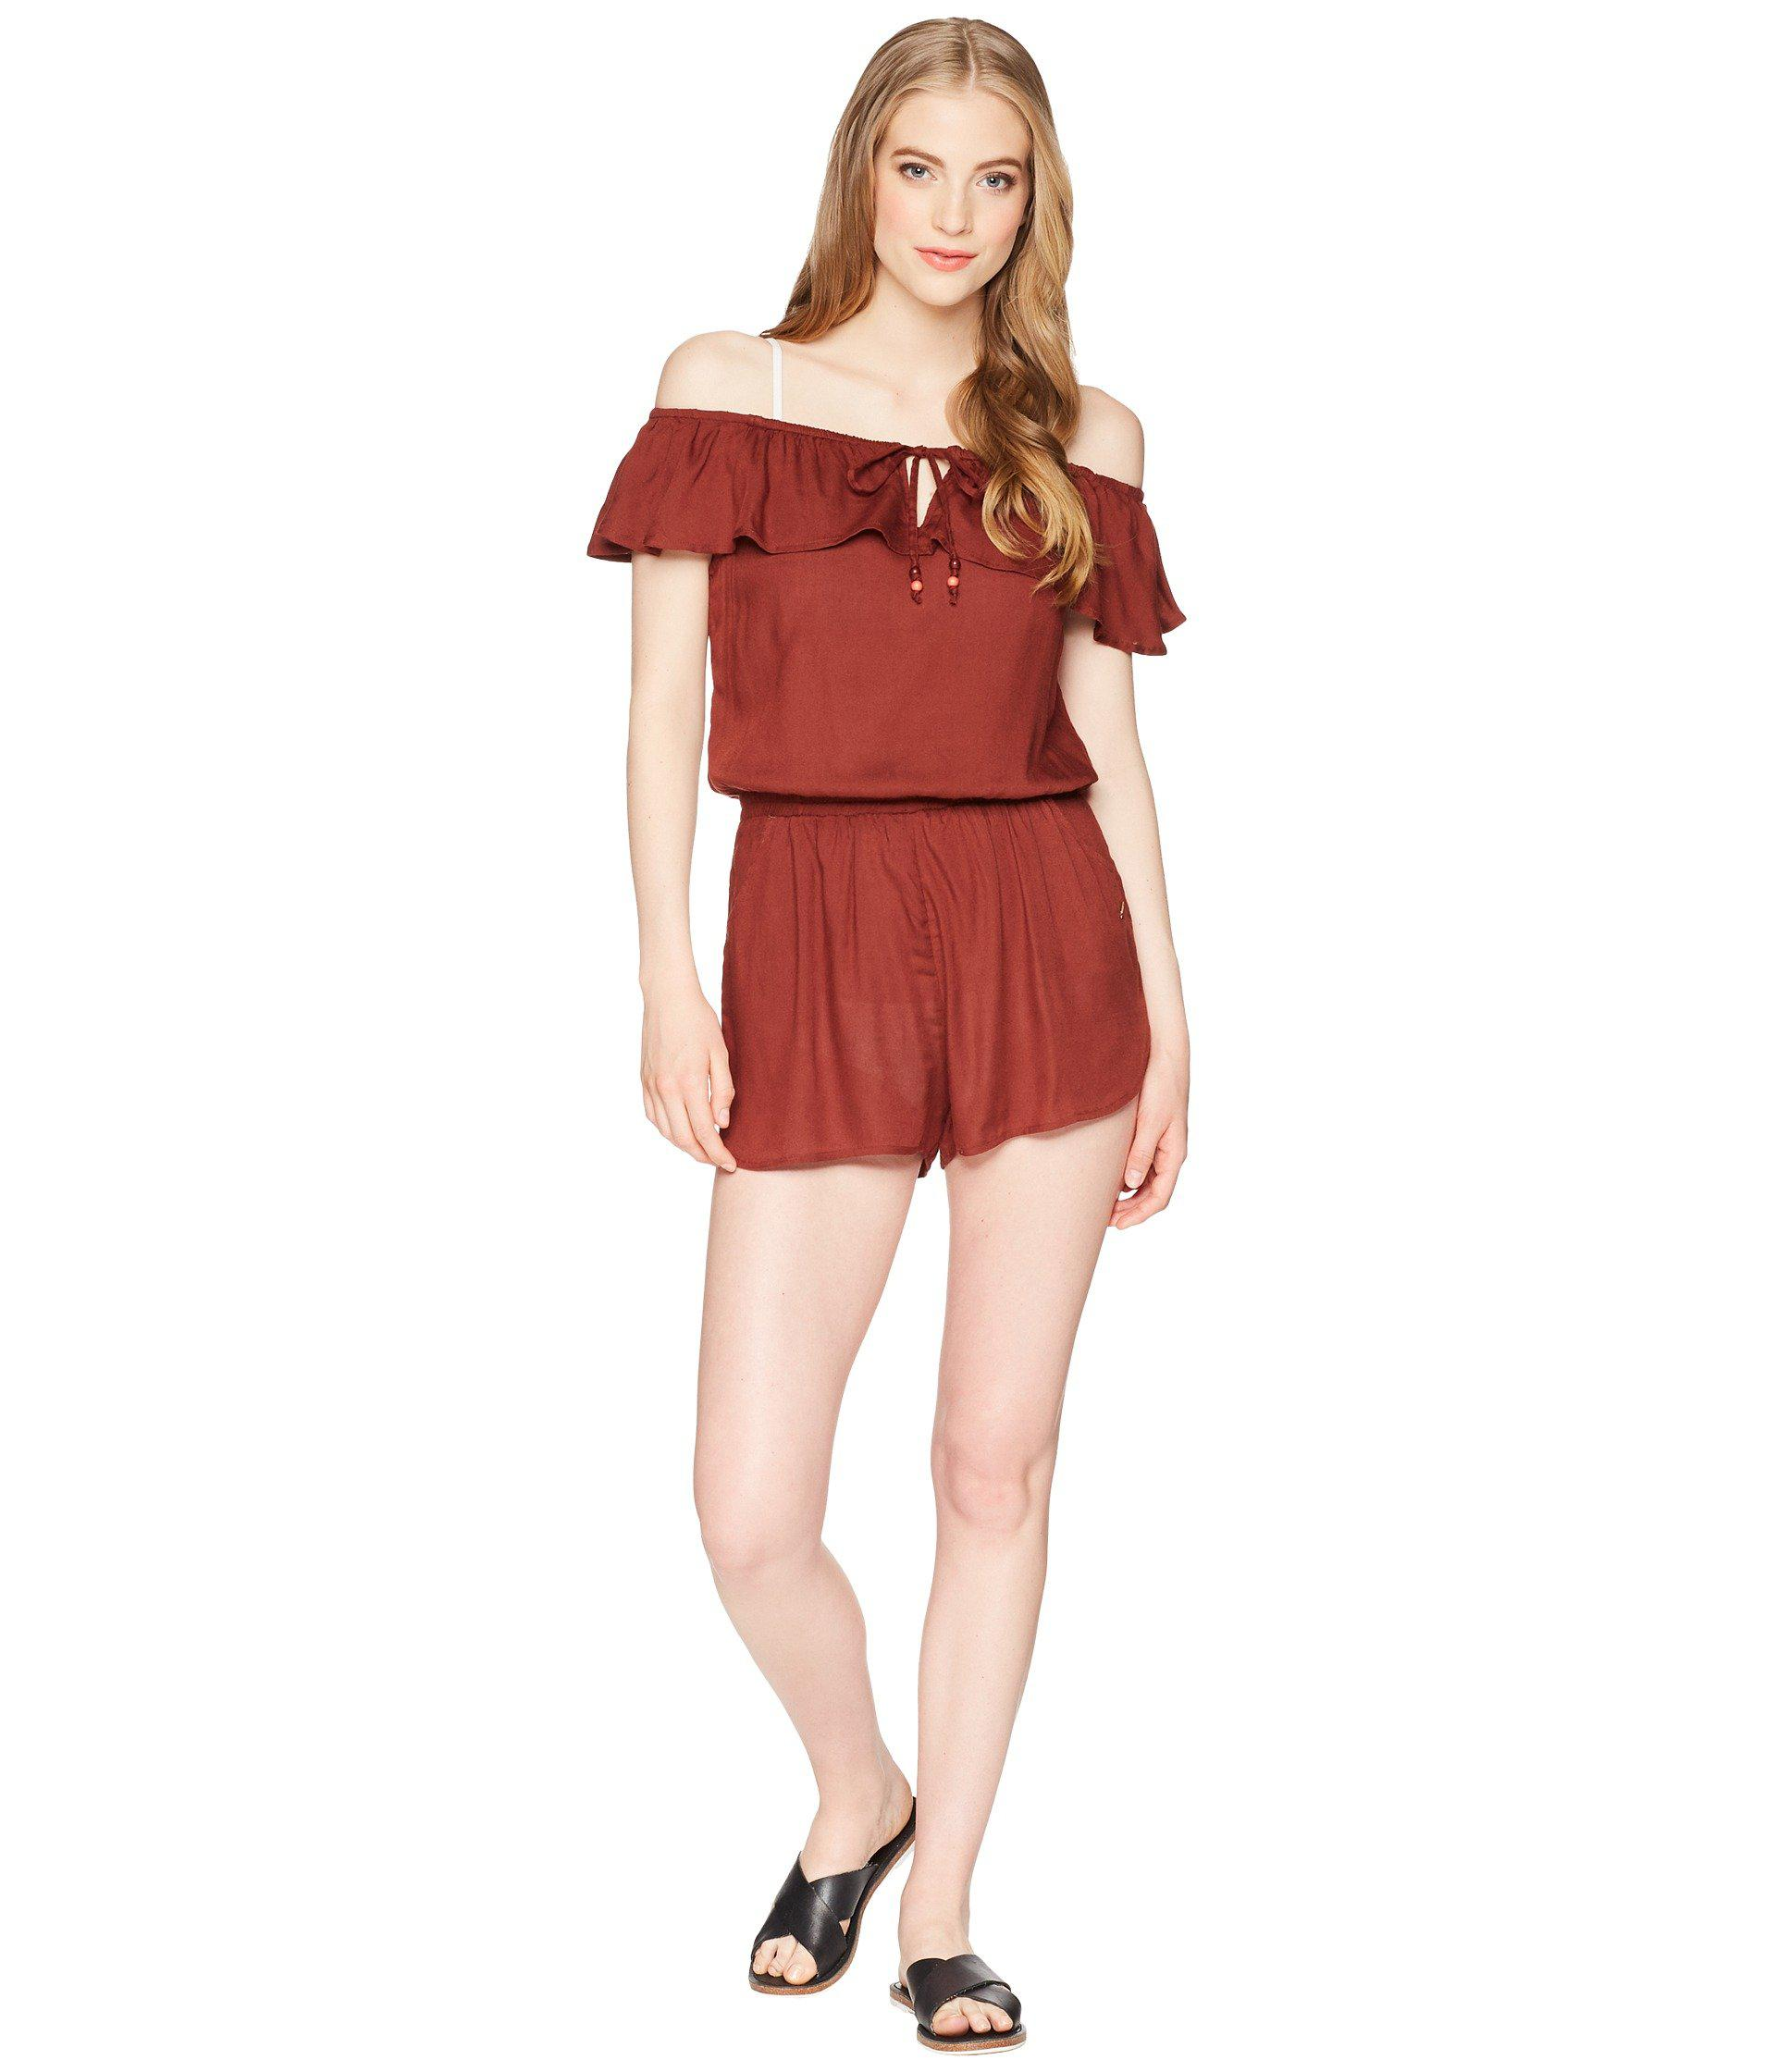 ca9cbc9028 Lyst - Roxy Western Holiday Romper Cover-up in Red